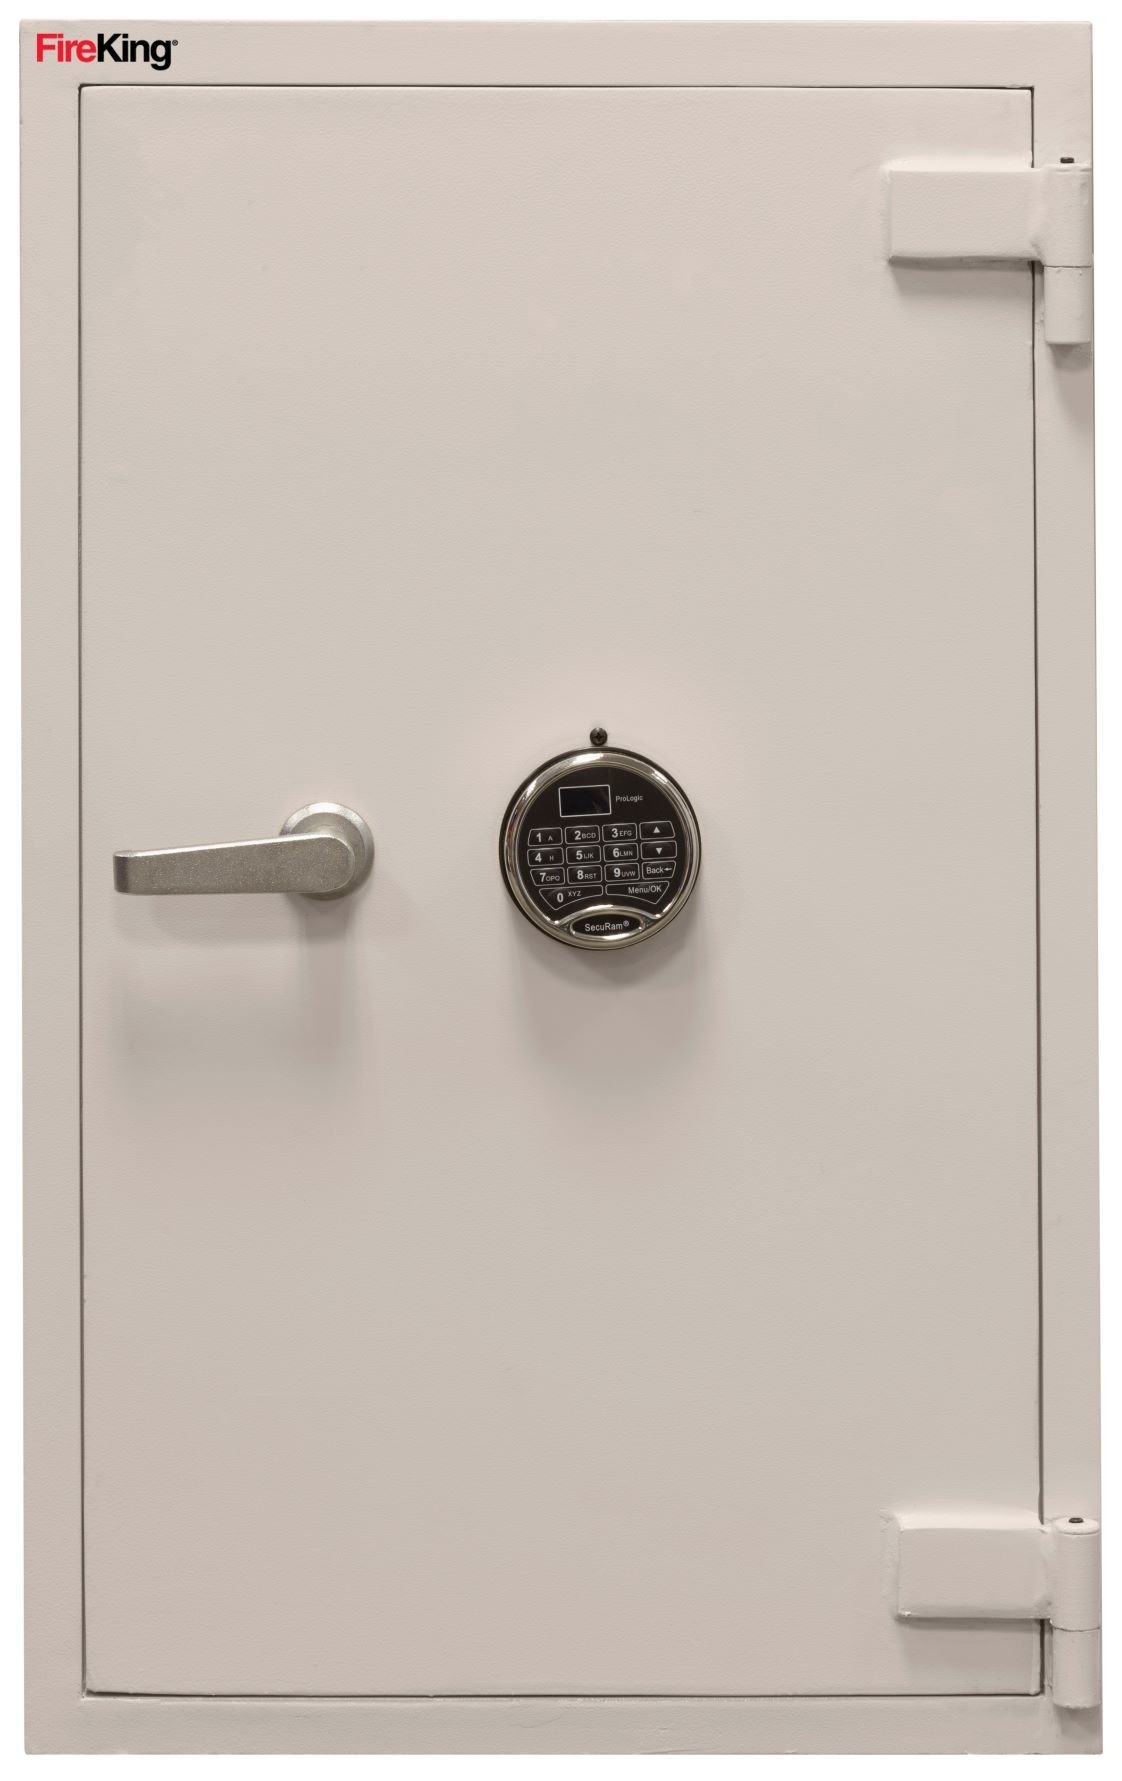 B3521 - B-Rated - Fireking Security Group - Pharmacy Safe